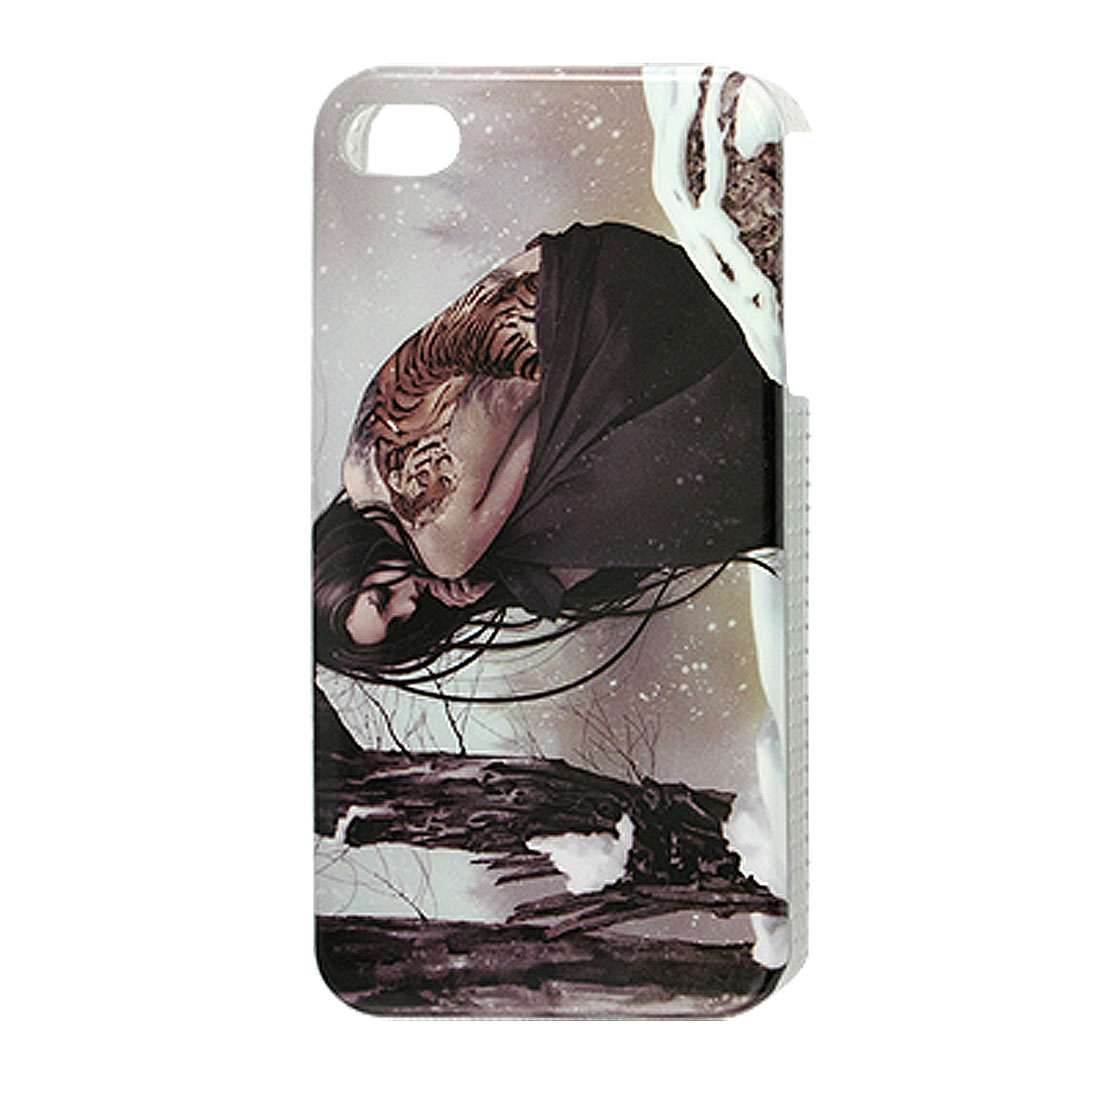 IMD Lady in the Snow Pattern Plastic Back Guard Case for iPhone 4 4G 4S